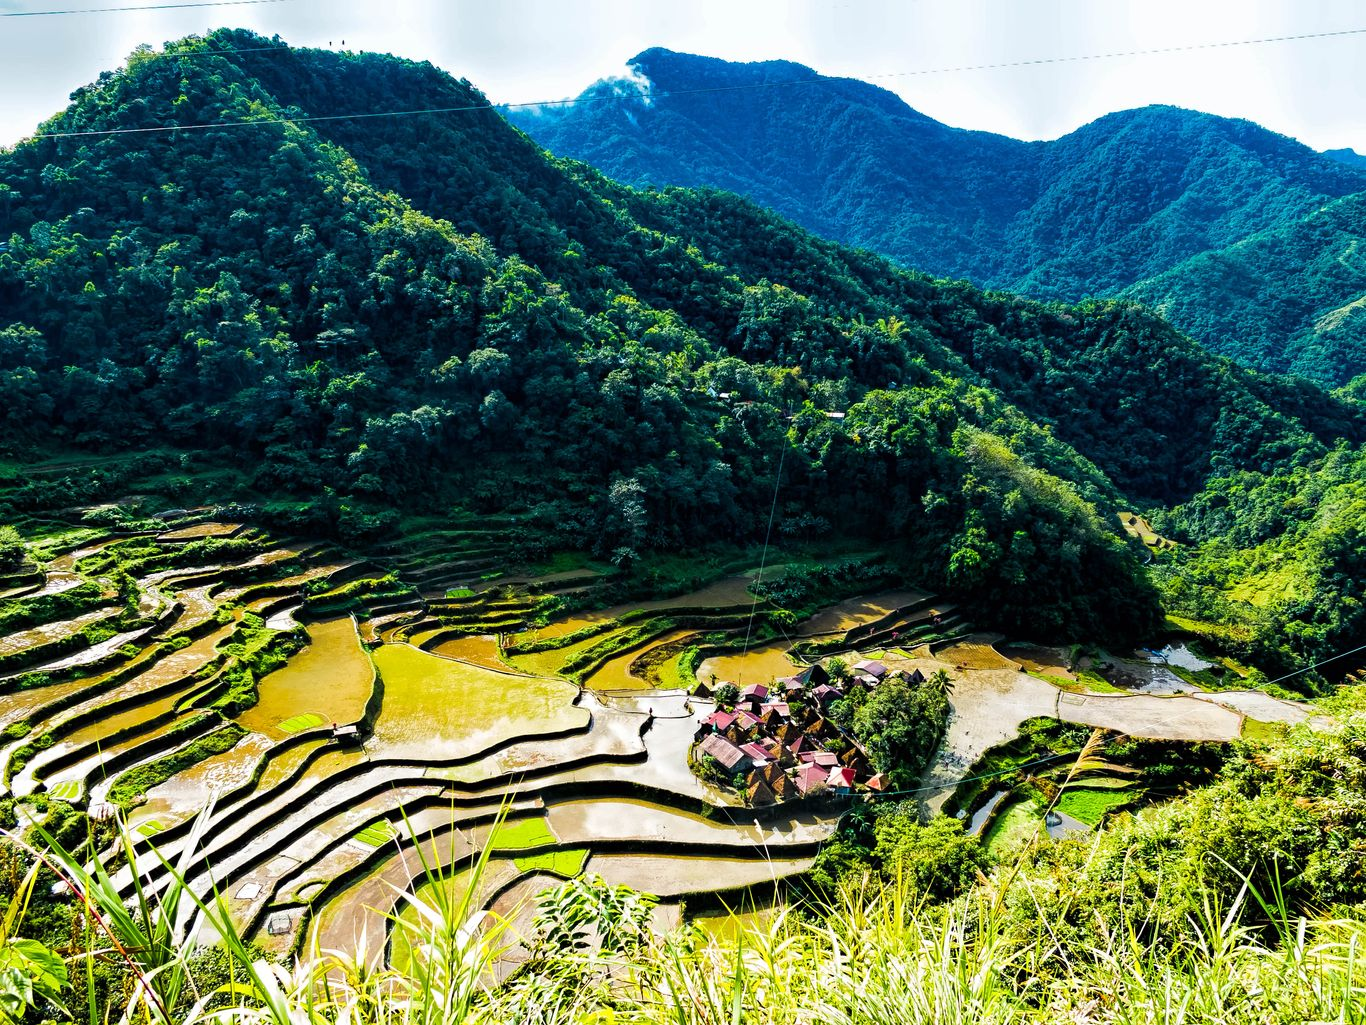 A small traditional village lies nestled at the foot of rice terraces carved on the slope of a mountain, surrounded by forested hills and mountains